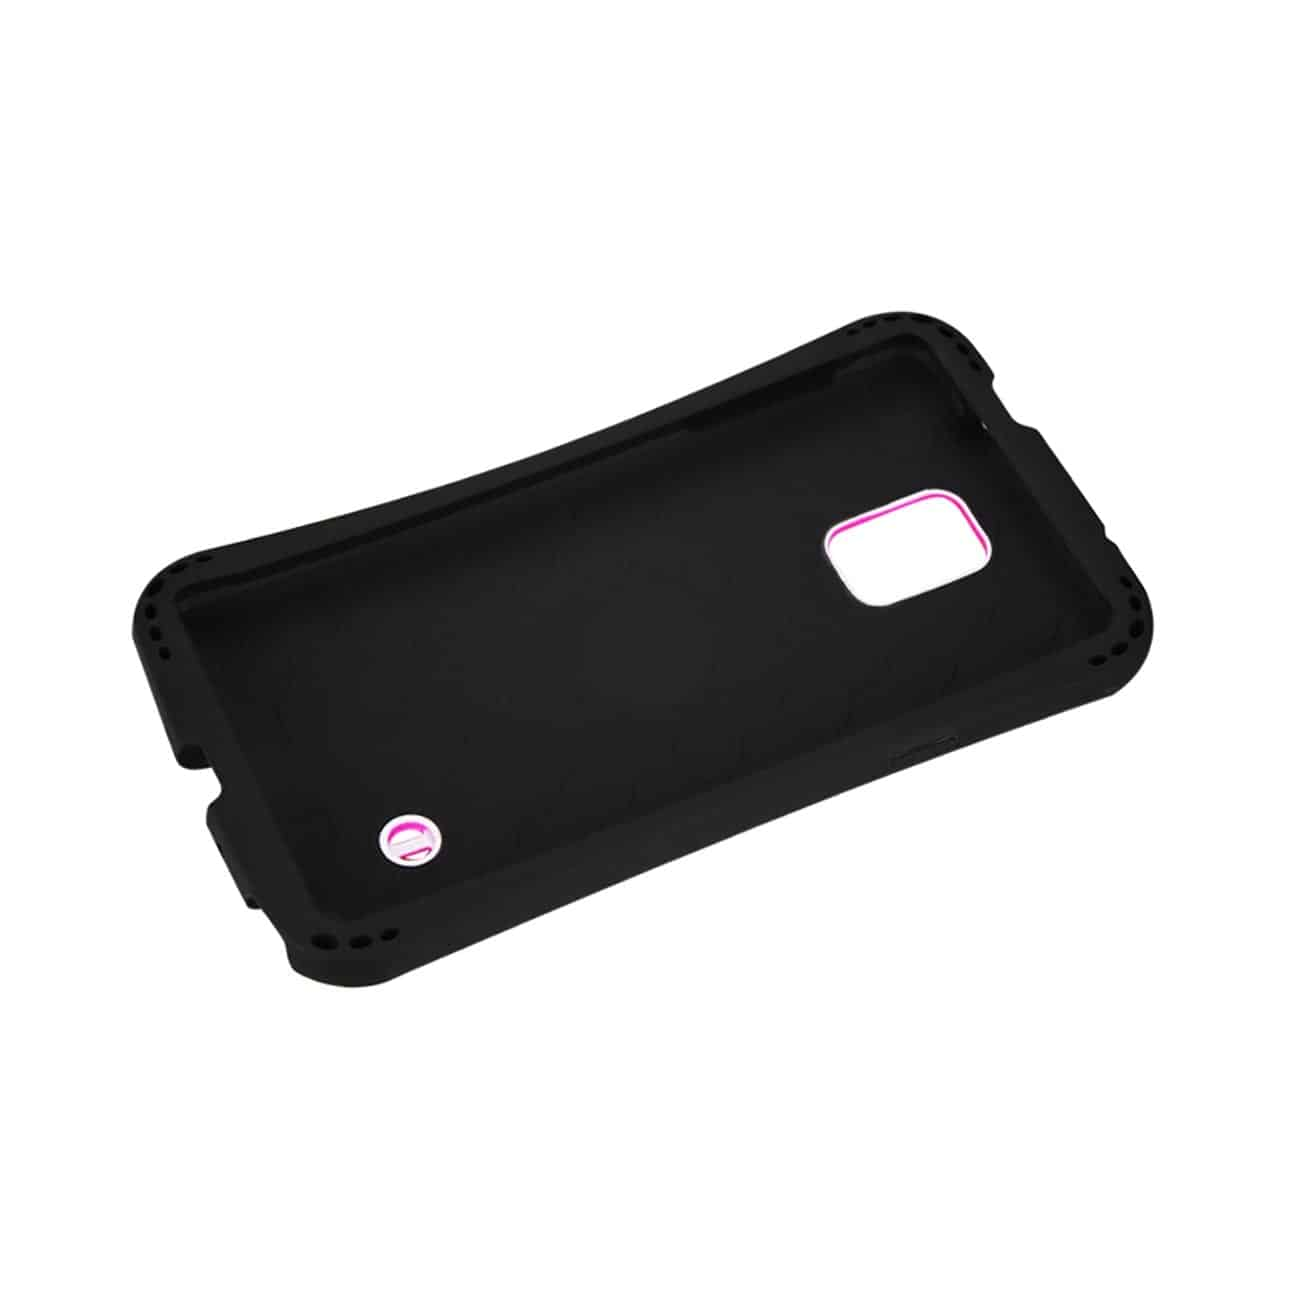 SAMSUNG GALAXY NOTE 4 DROPPROOF AIR CUSHION CASE WITH CHAIN HOLE IN HOT PINK